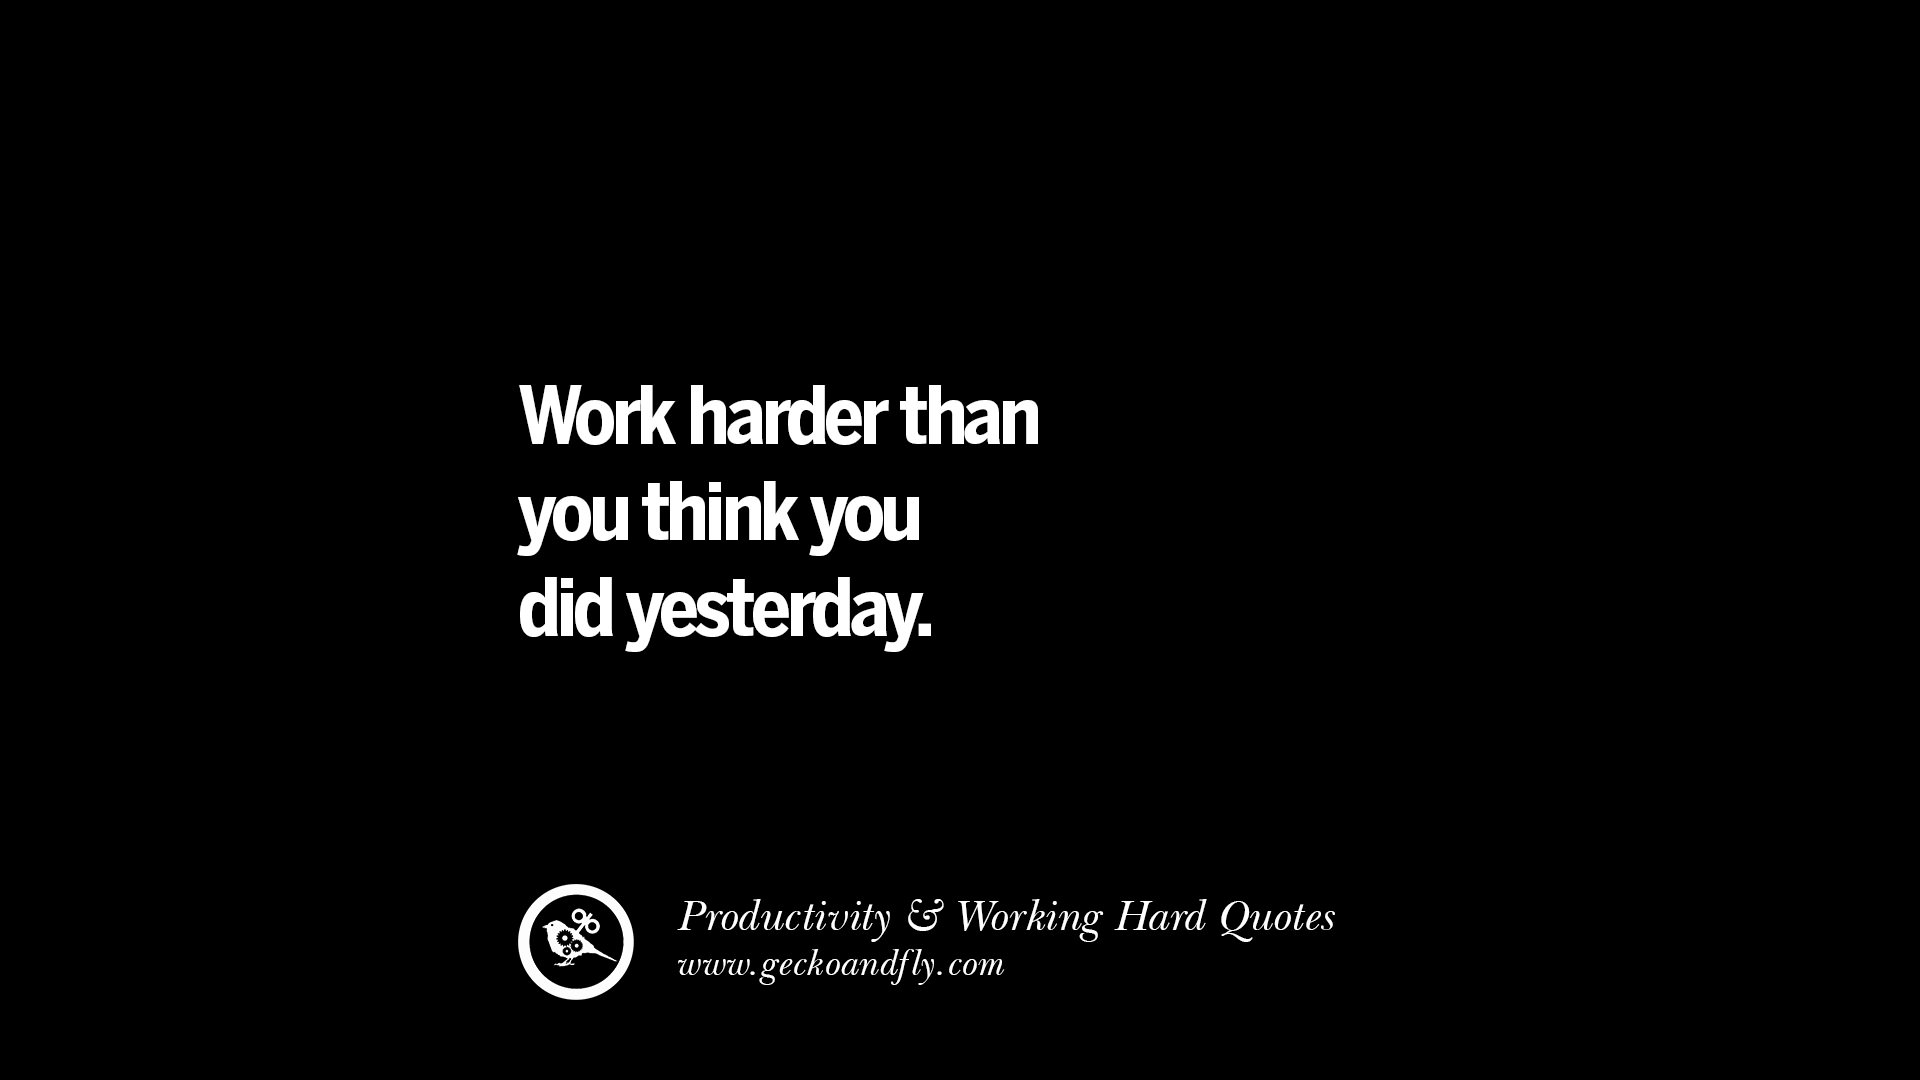 Hd Quote Wallpapers For Laptop 30 Uplifting Quotes On Increasing Productivity And Working